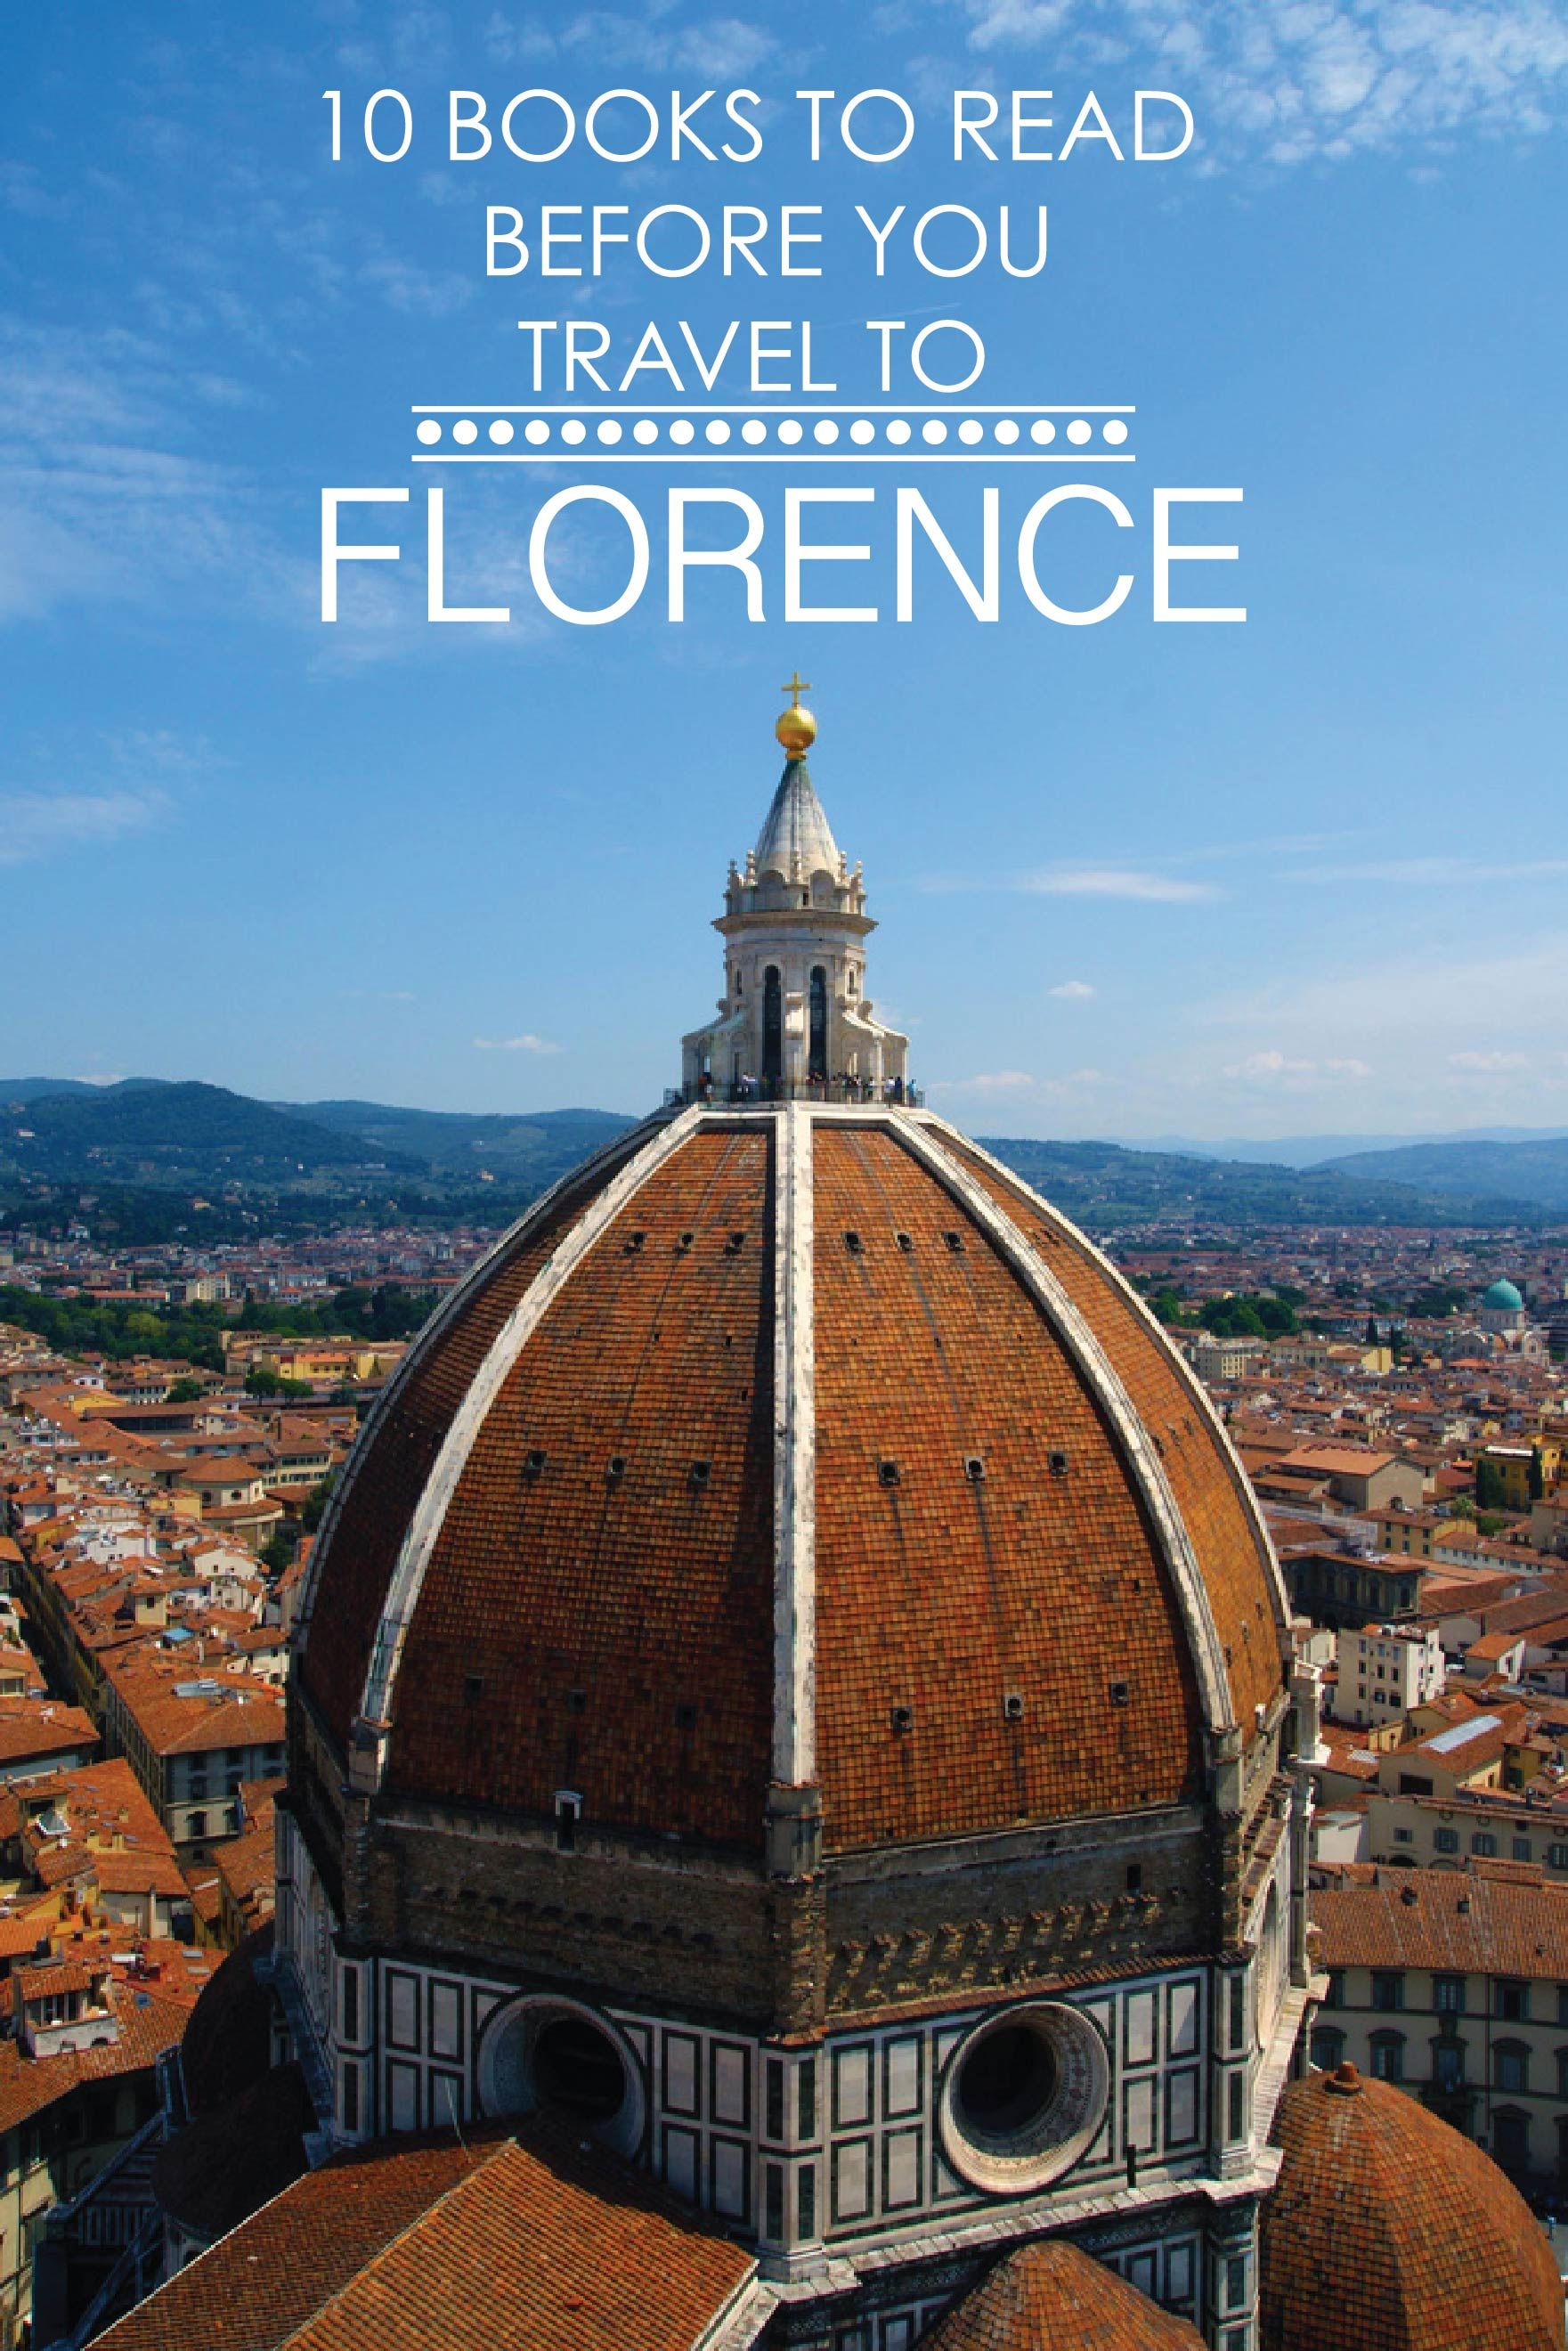 10 Books To Read Before You Travel To Florence